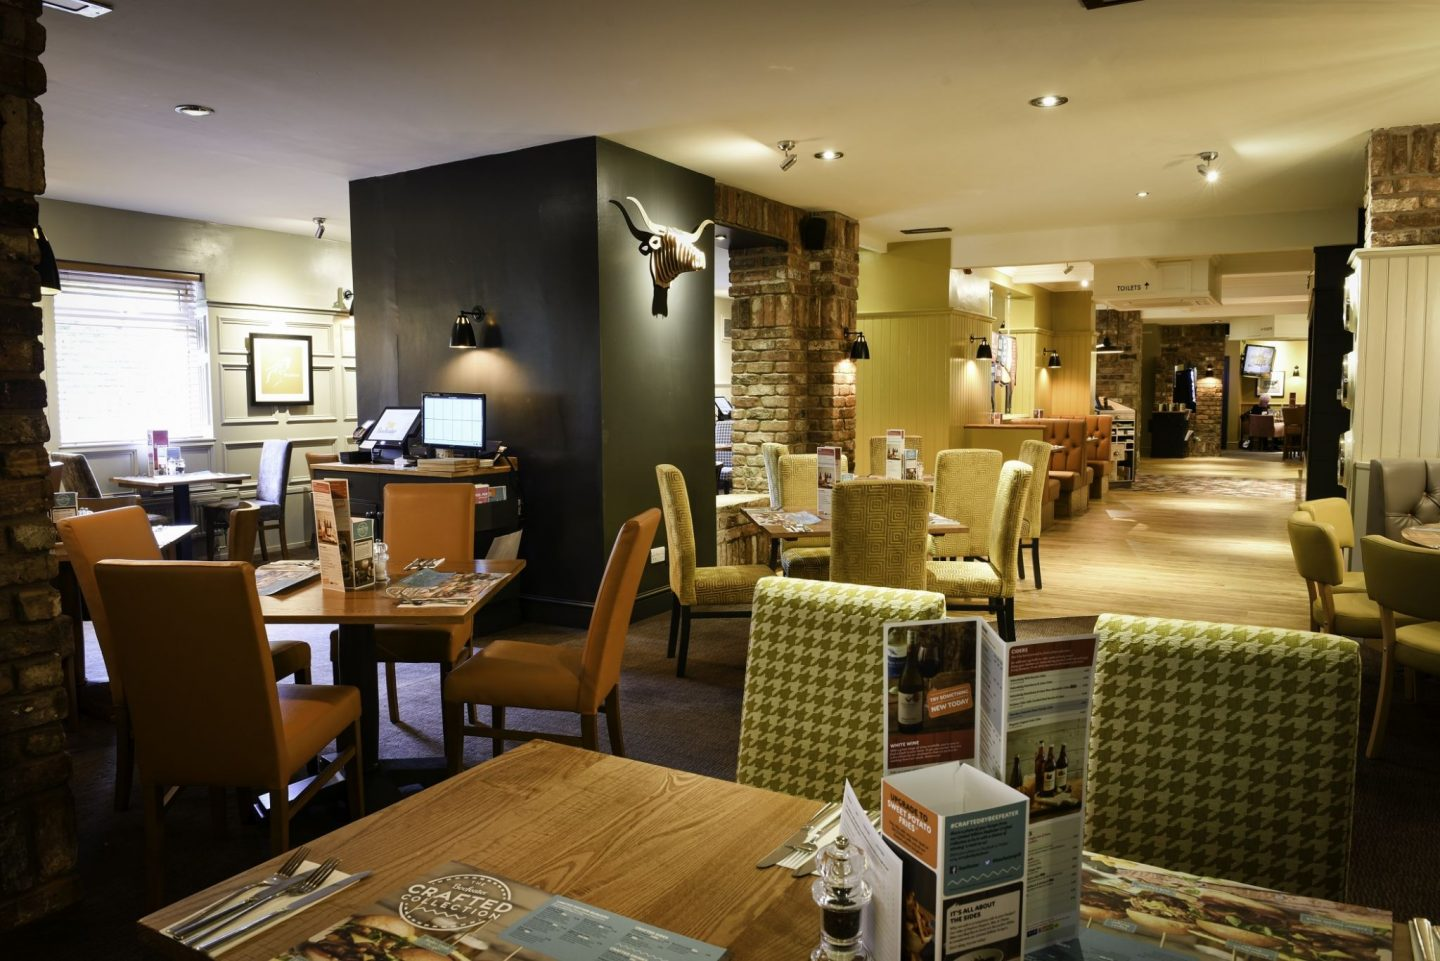 Beefeater-Springwood-Park-Interior-Macclesfield-Cheshire-Food-Blogger-Yeah-Lifestyle